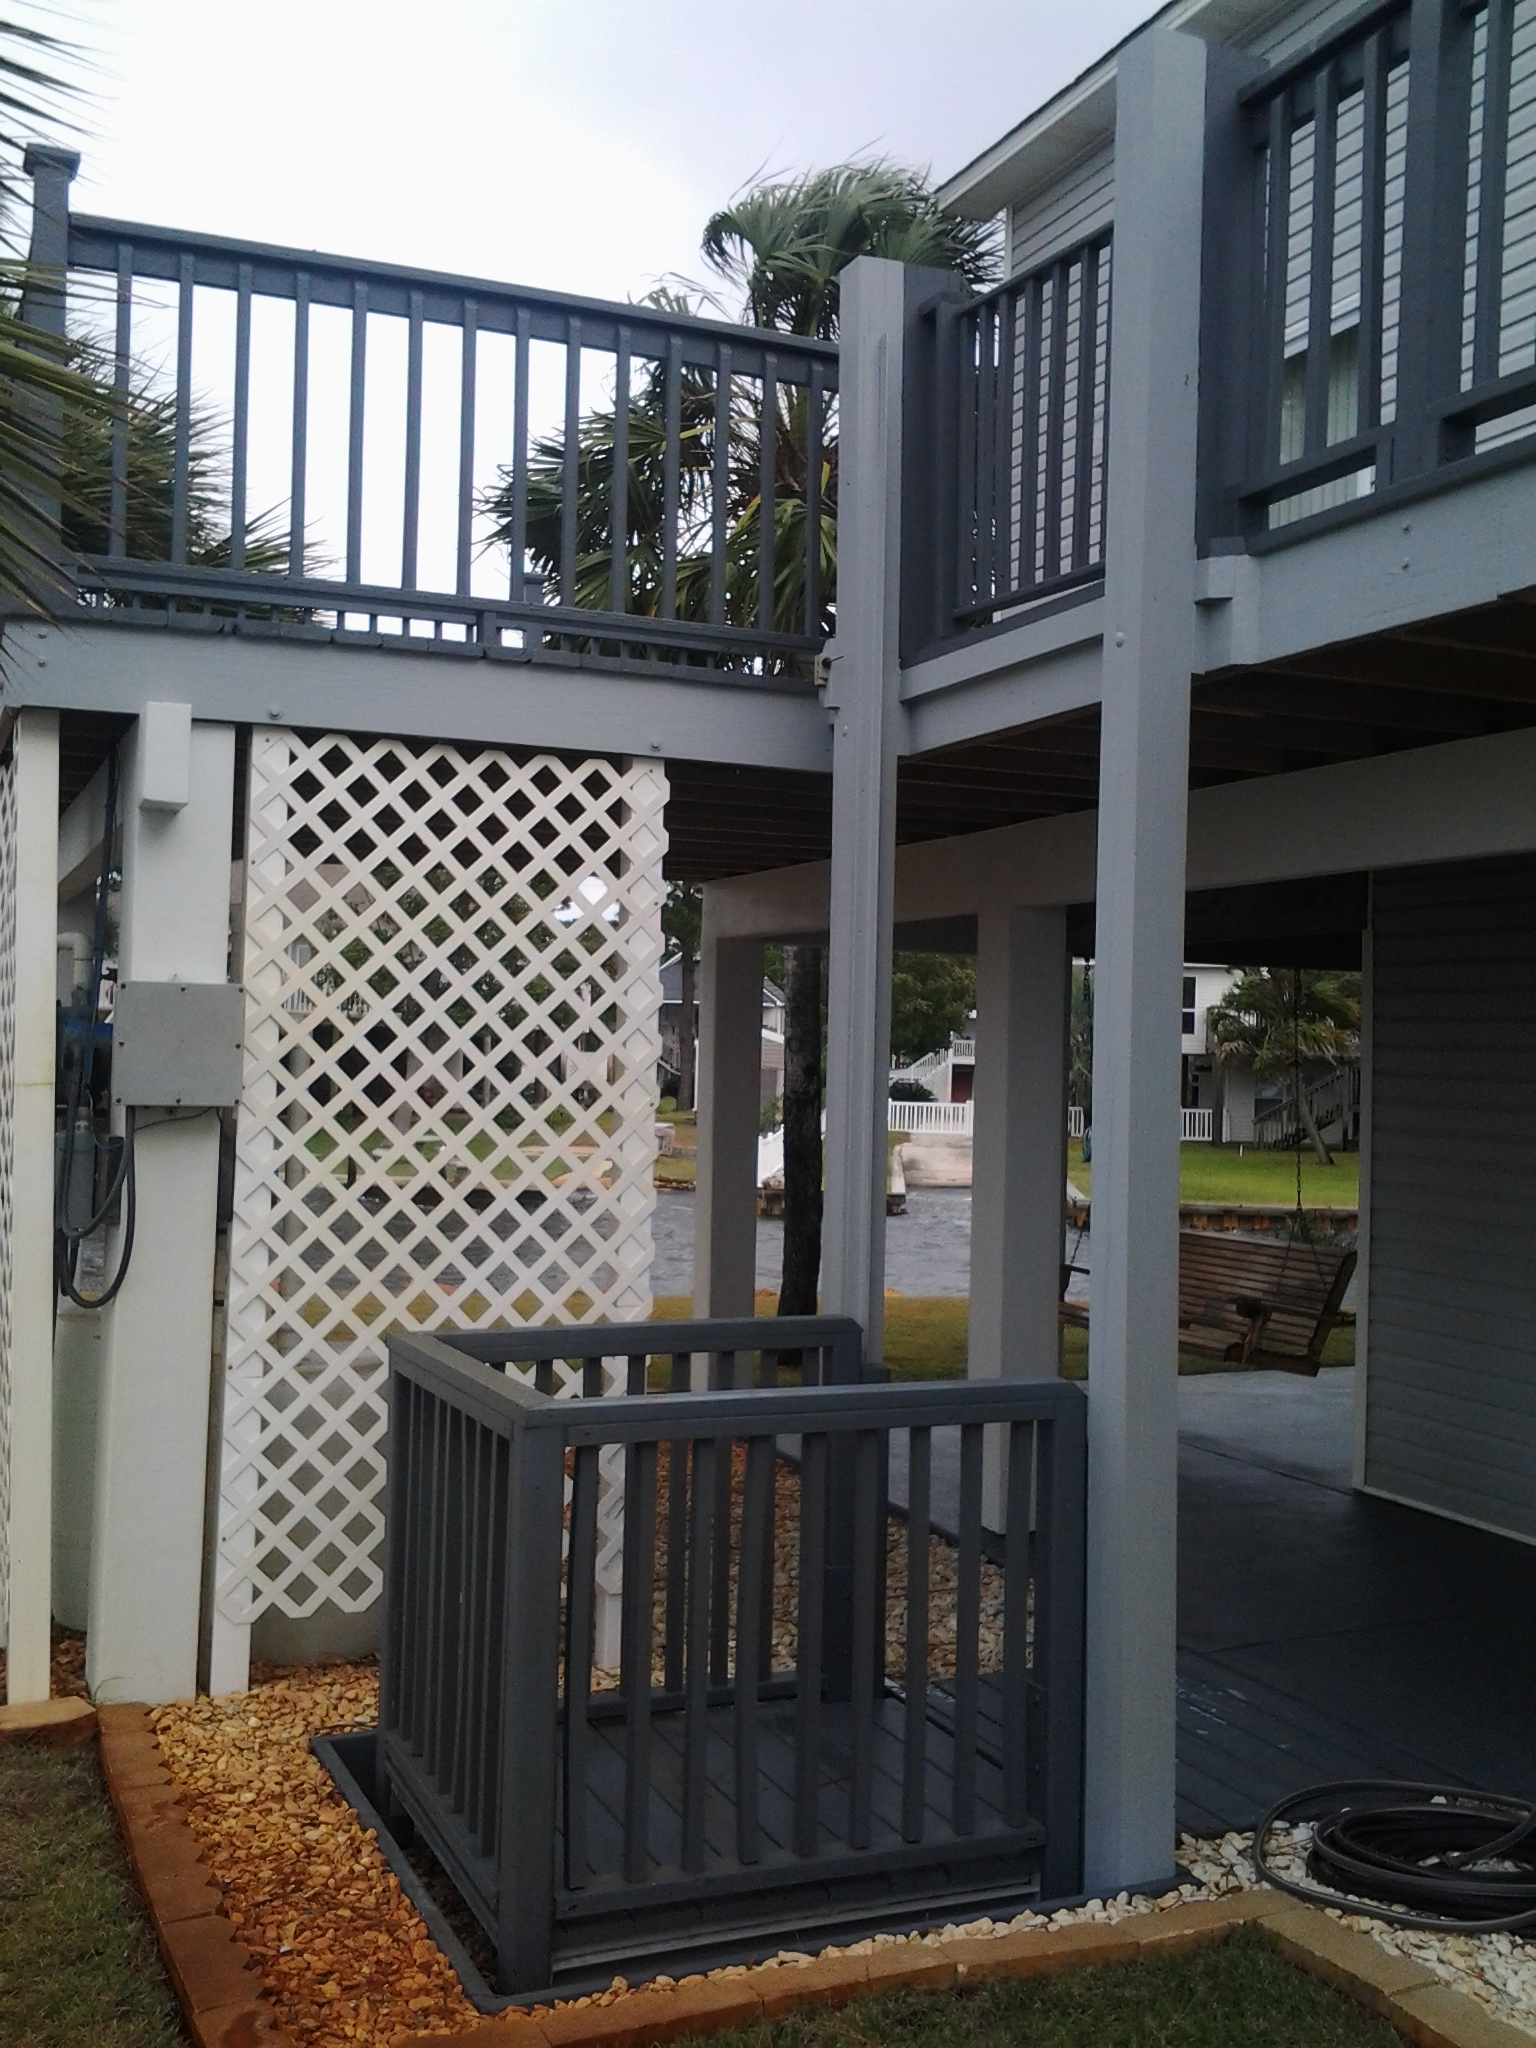 Aquarius elevators and lifts llc in pensacola fl whitepages for Home elevators direct